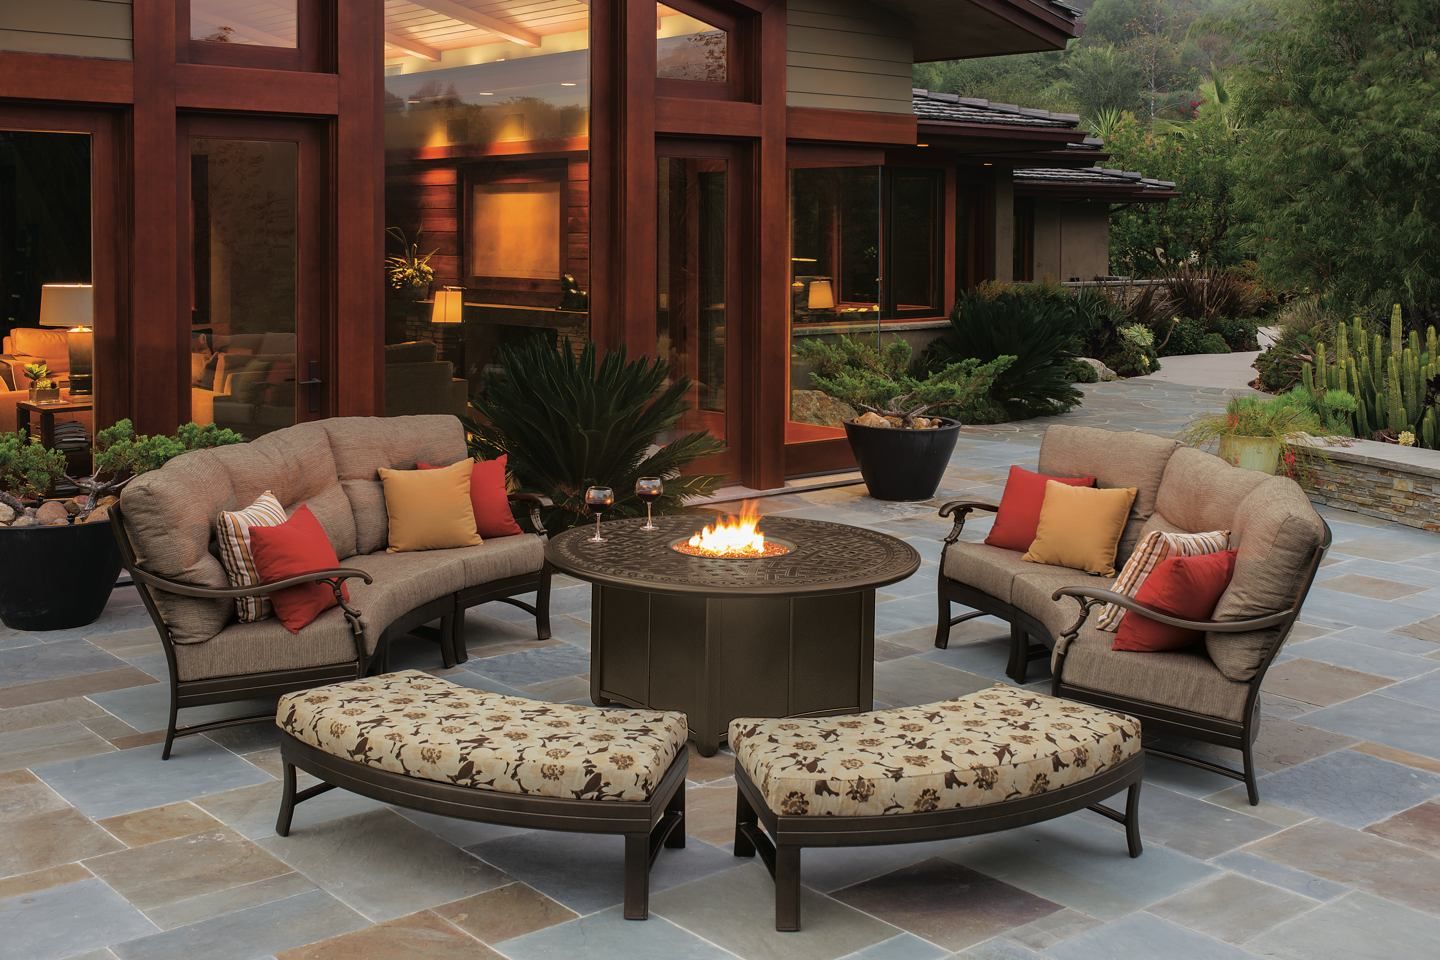 Patio Furniture Outdoor Furniture Garden Furniture